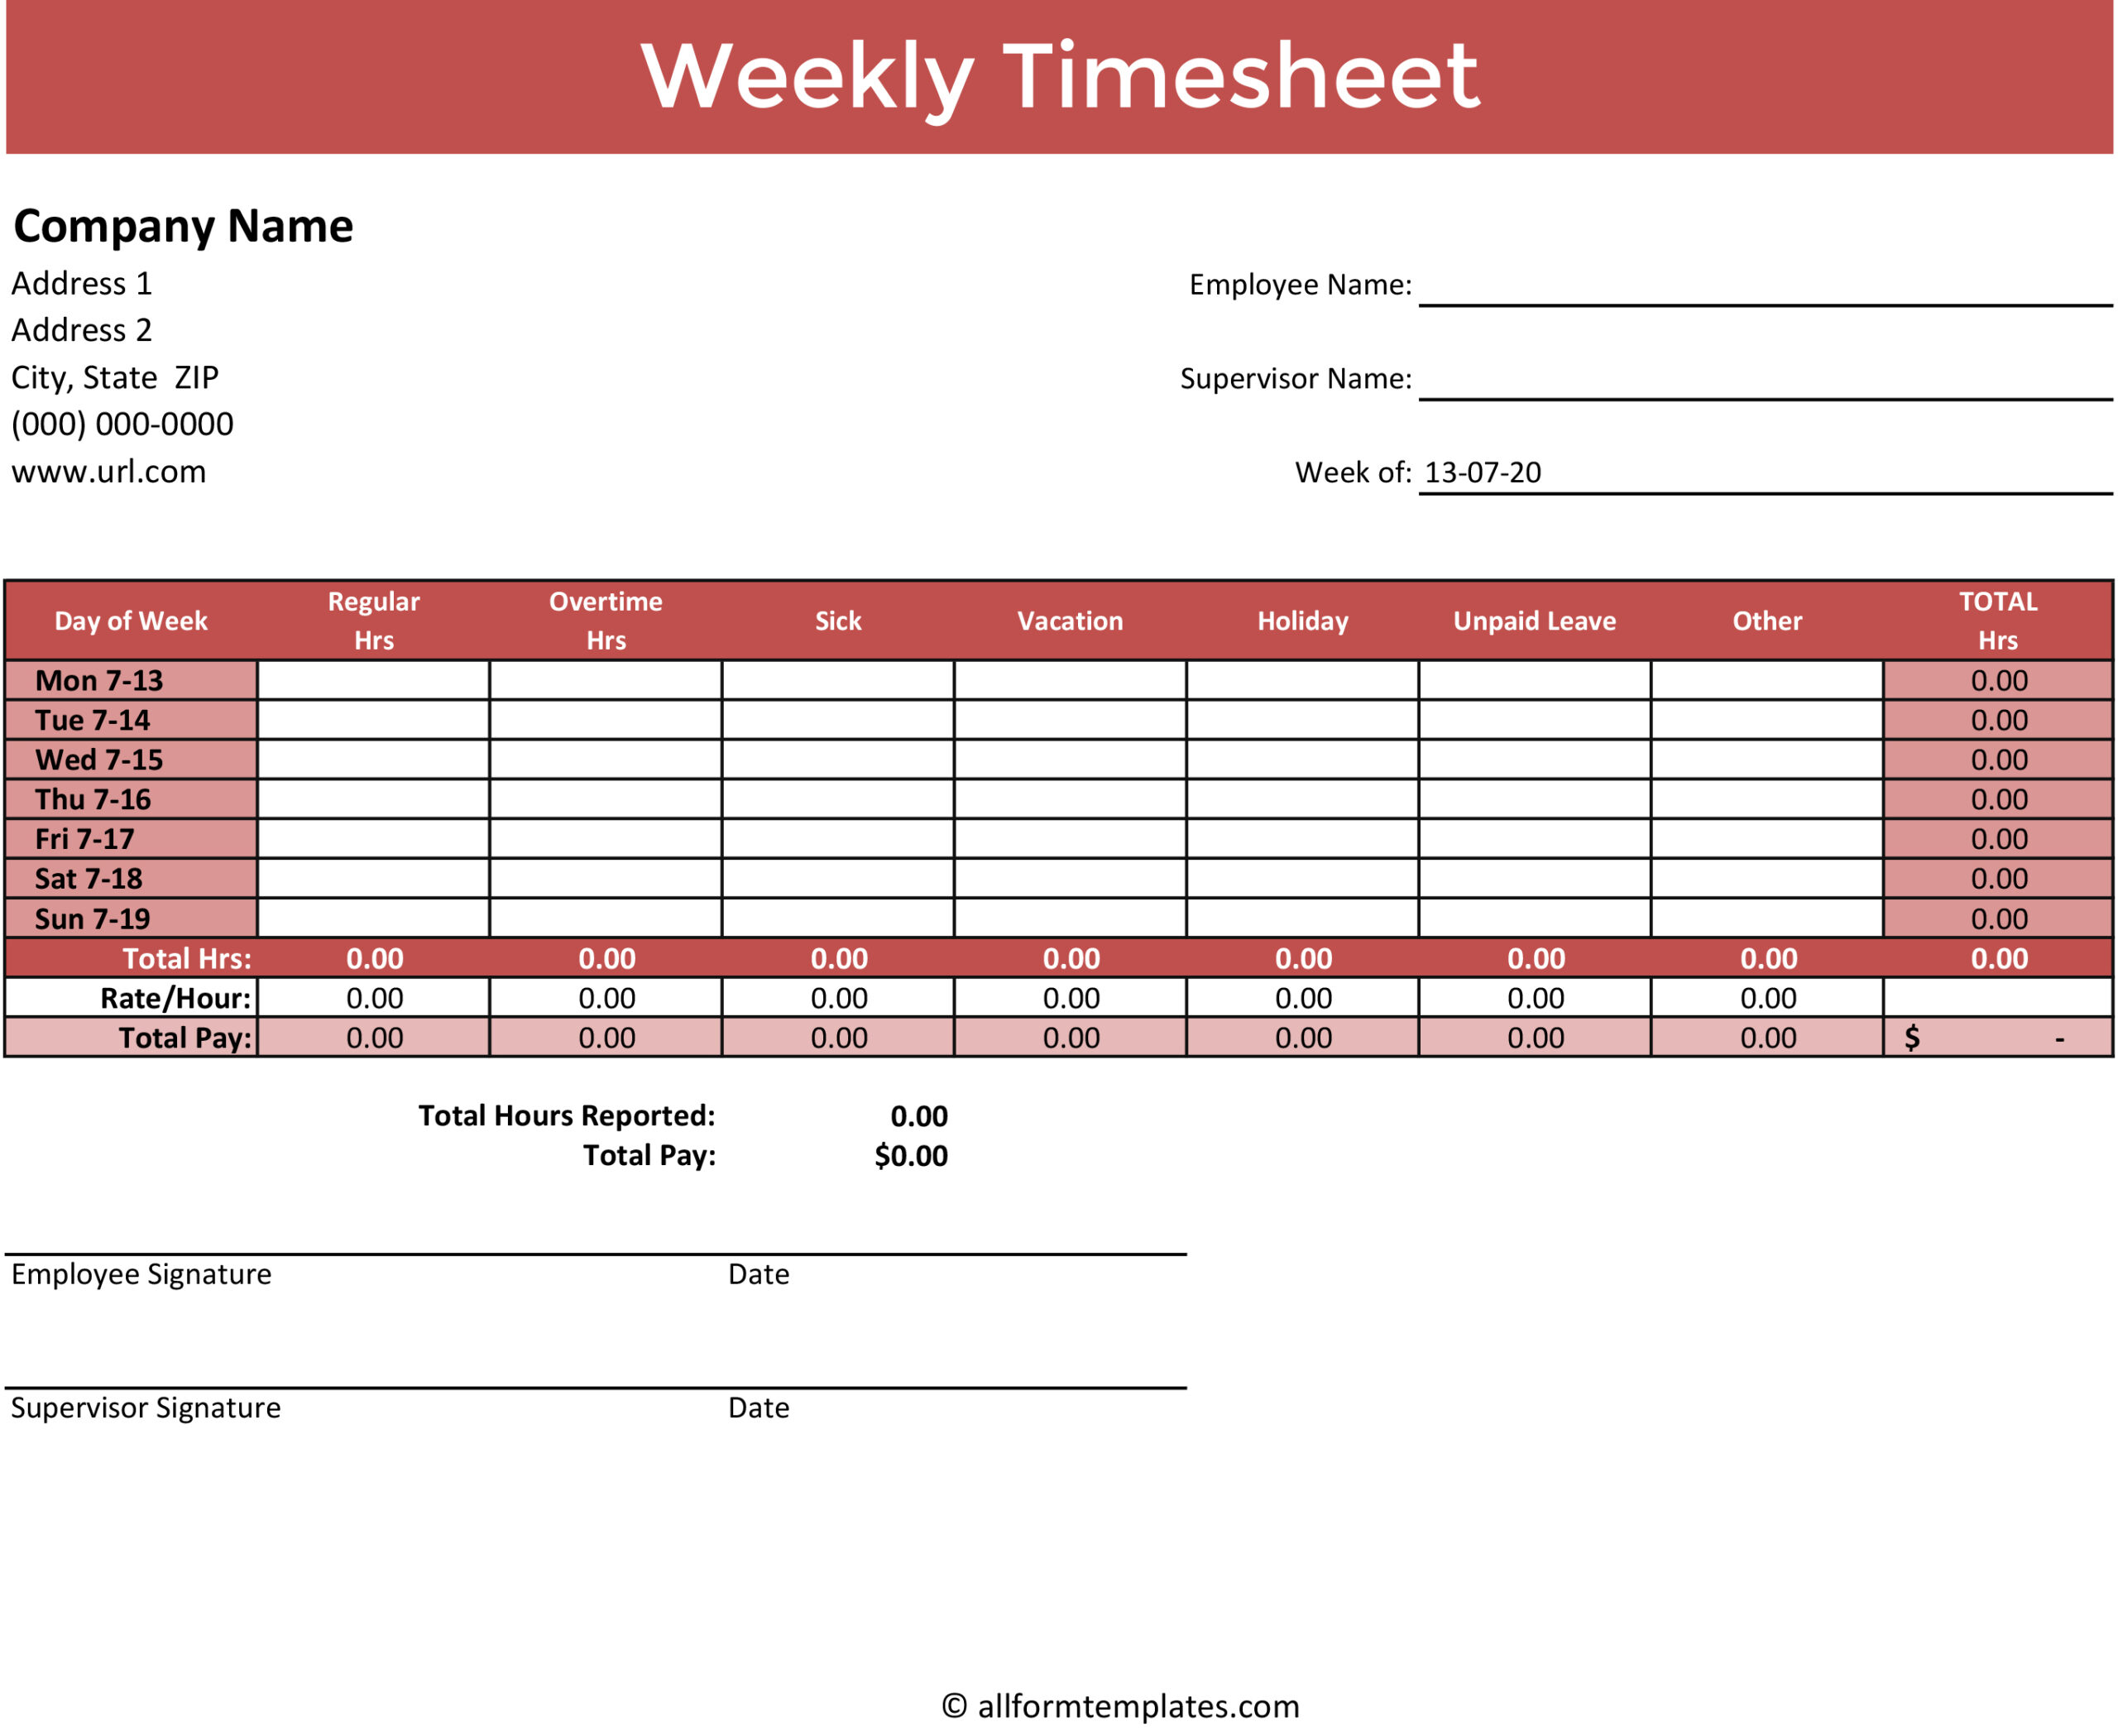 Weekly-Timesheet-Template-HD